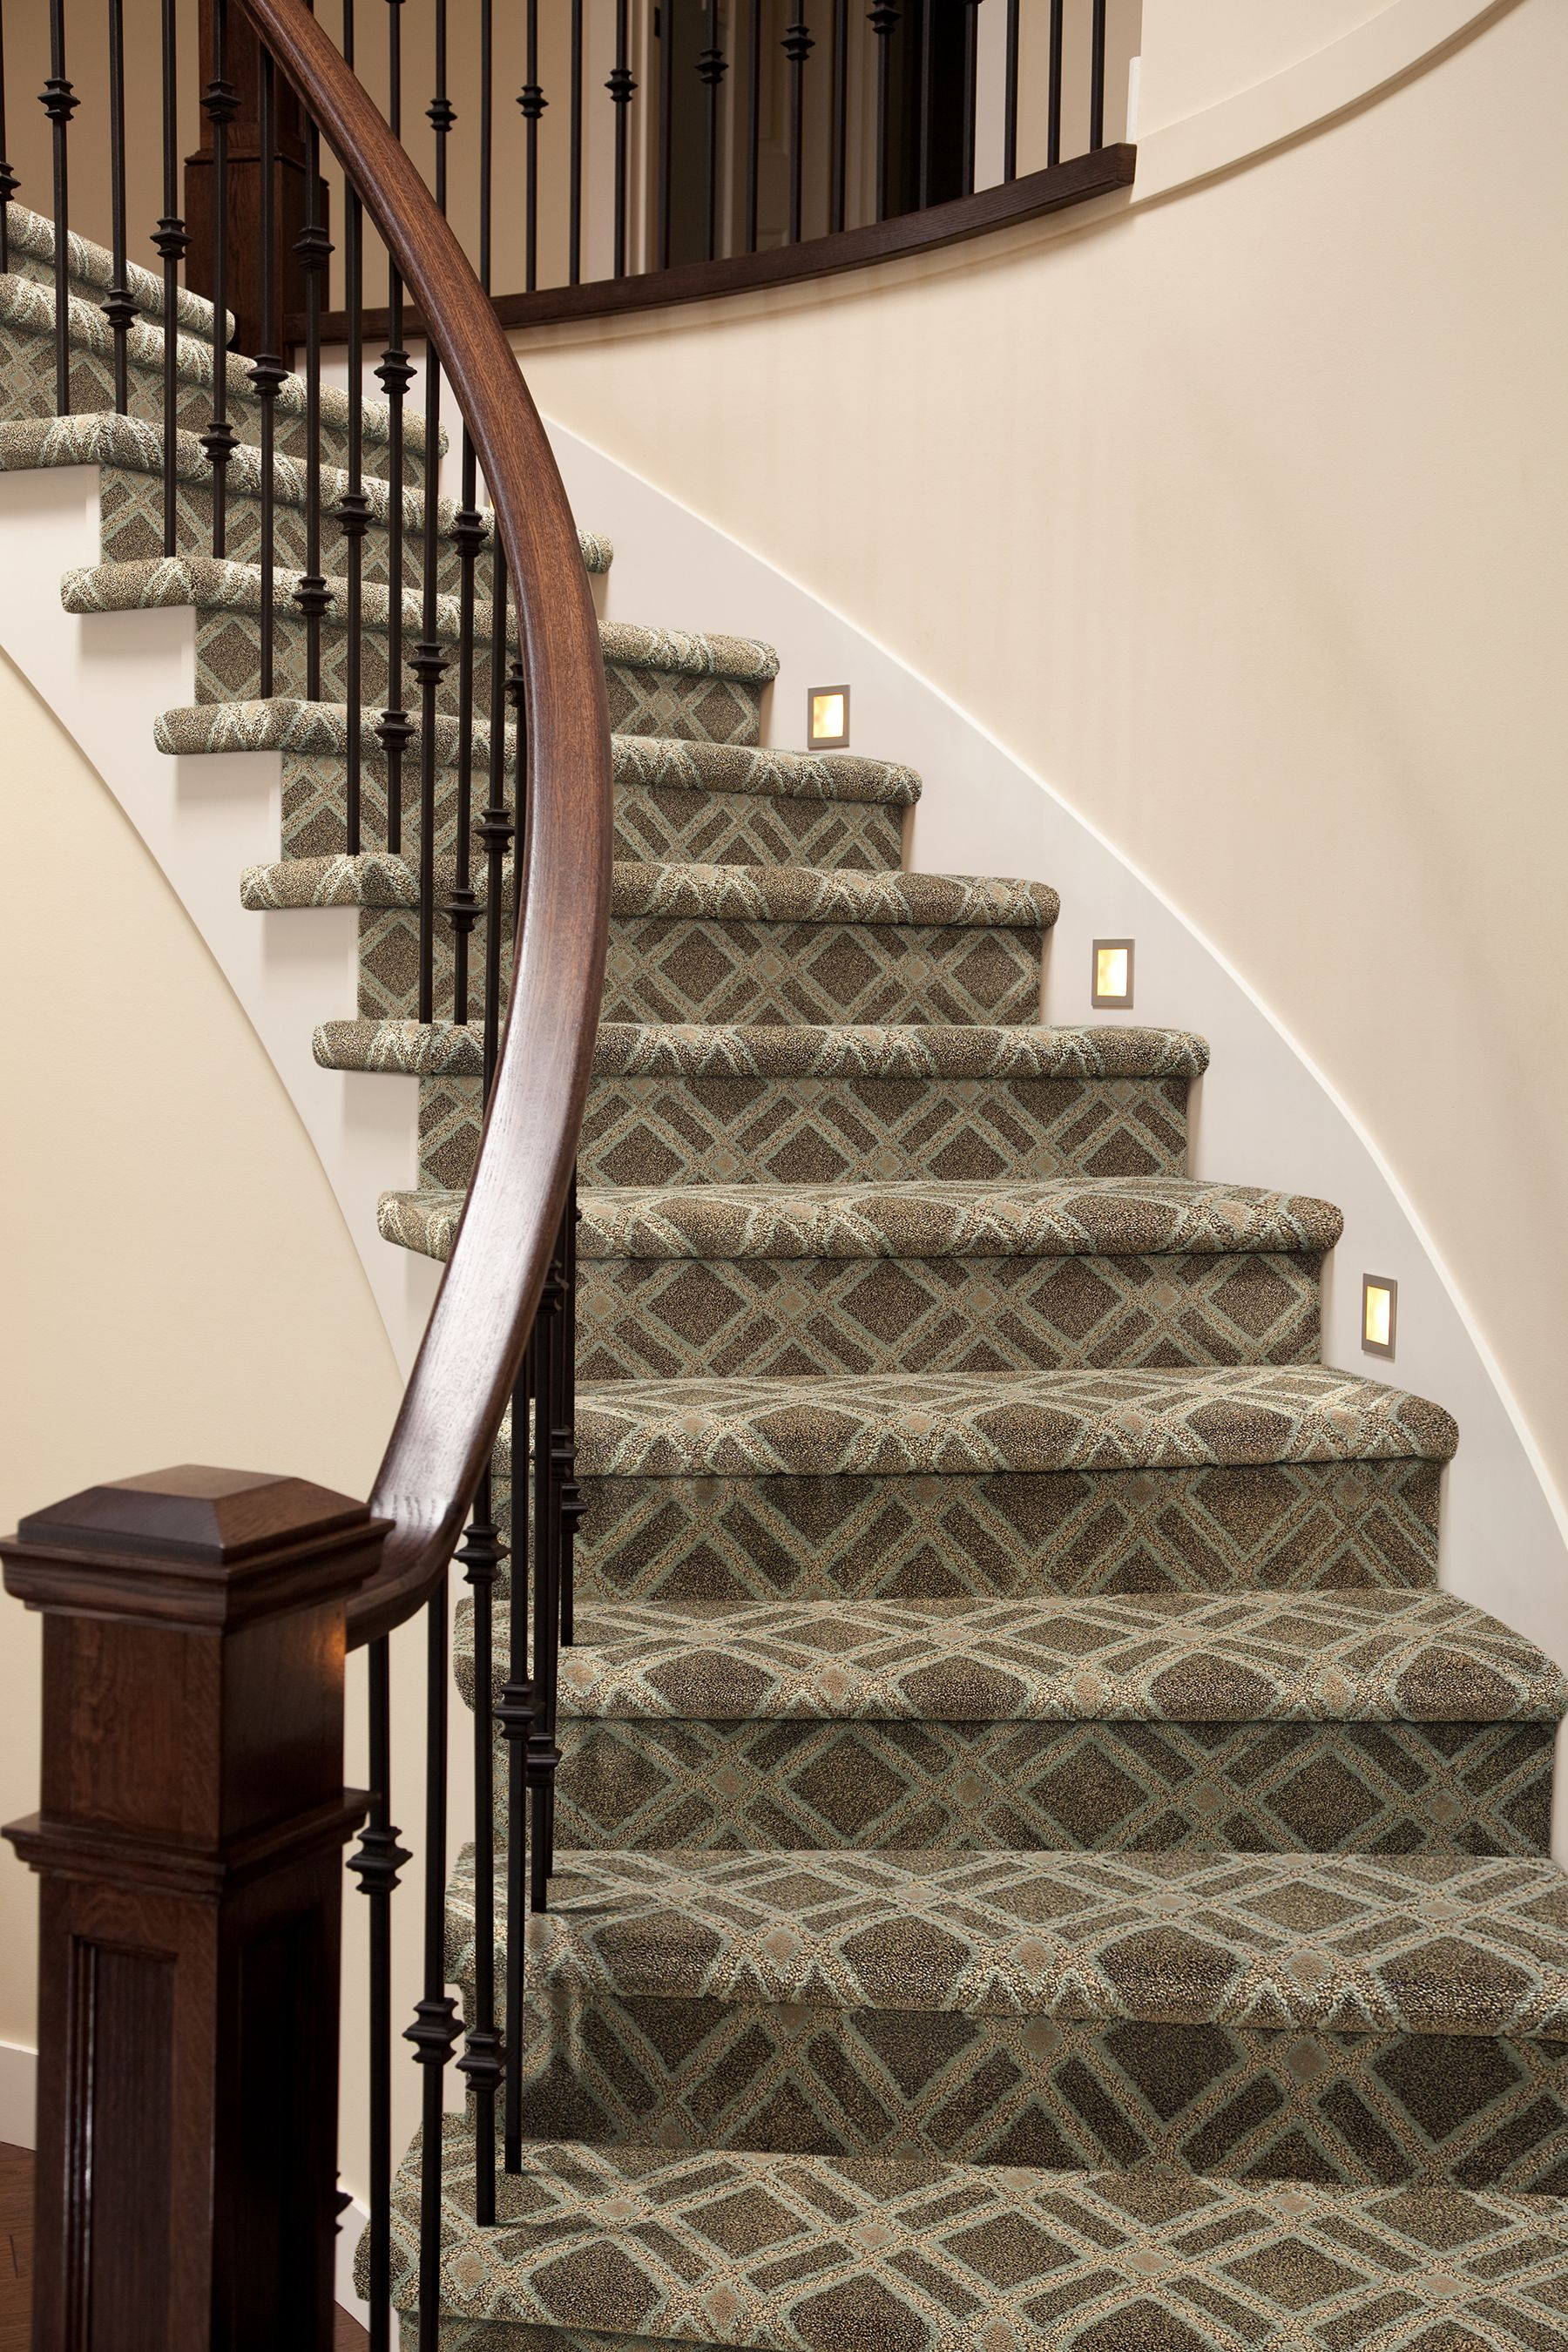 Conservatory Room Addition In The Uk 1040x1485 In 2020: Carpet Stairs, New Staircase, Stair Runner Carpet